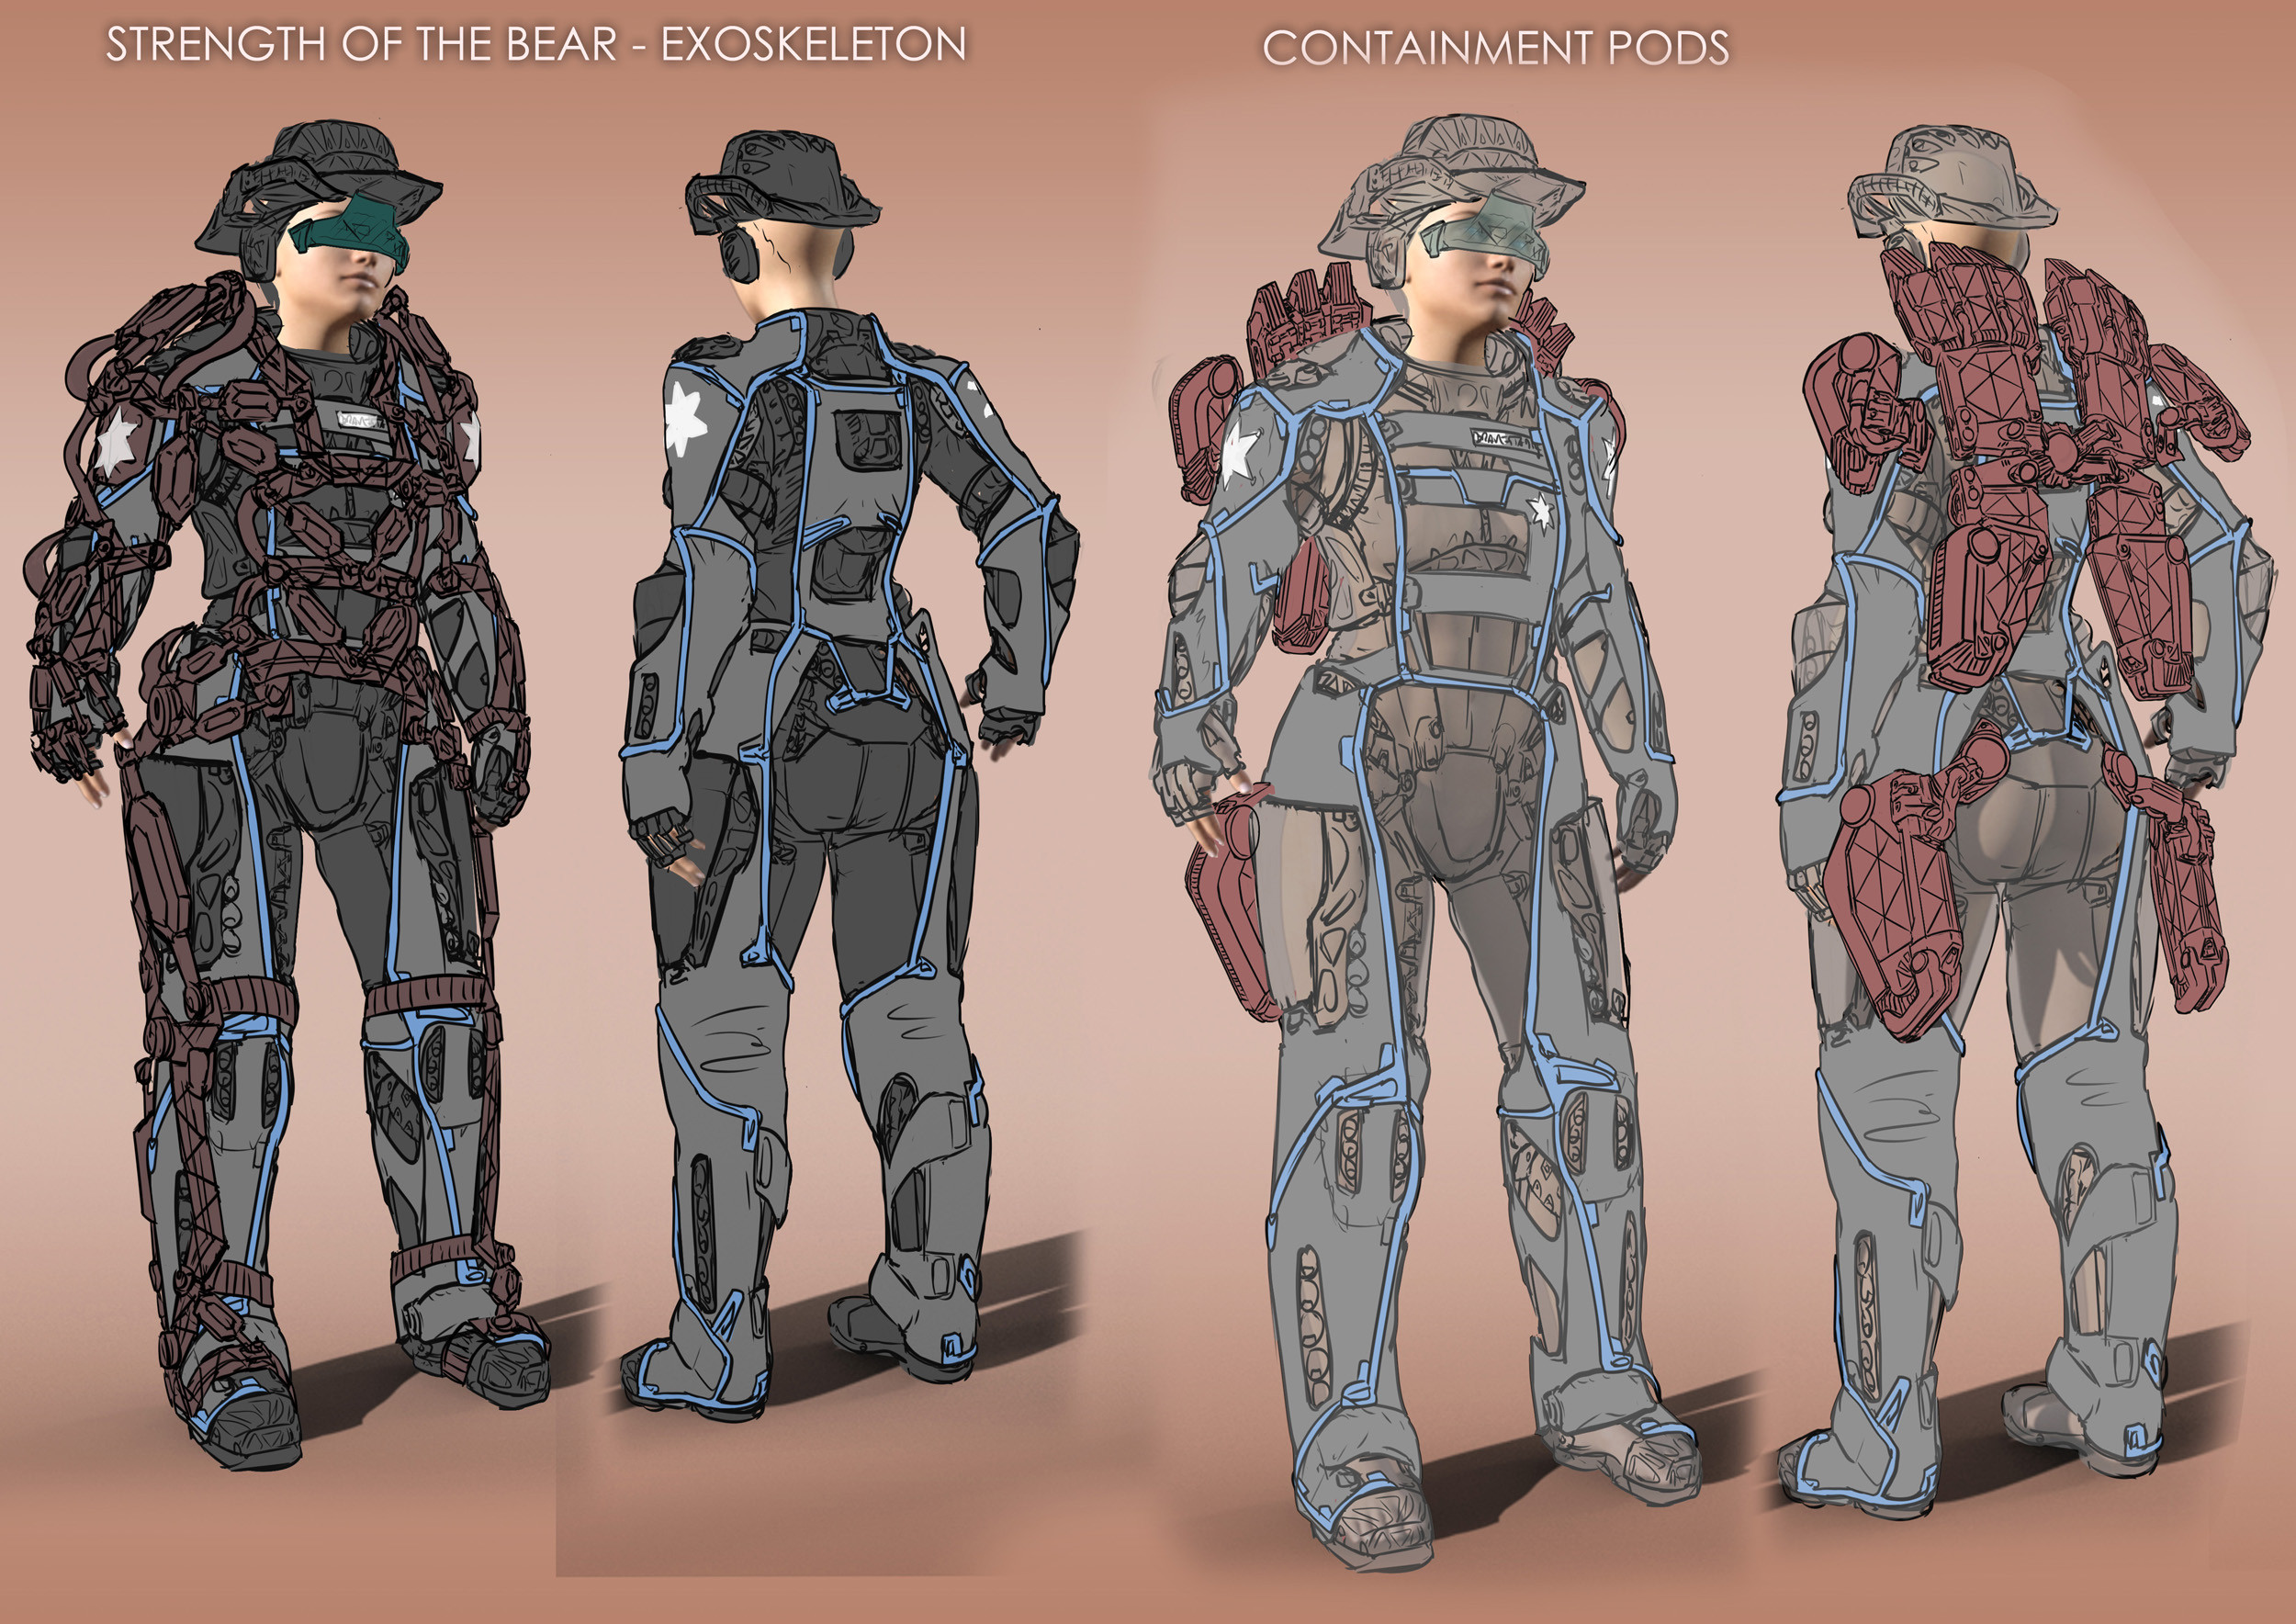 Sketches for the strength mode of the exosuit plus the container pods for the parts when the powers are not active